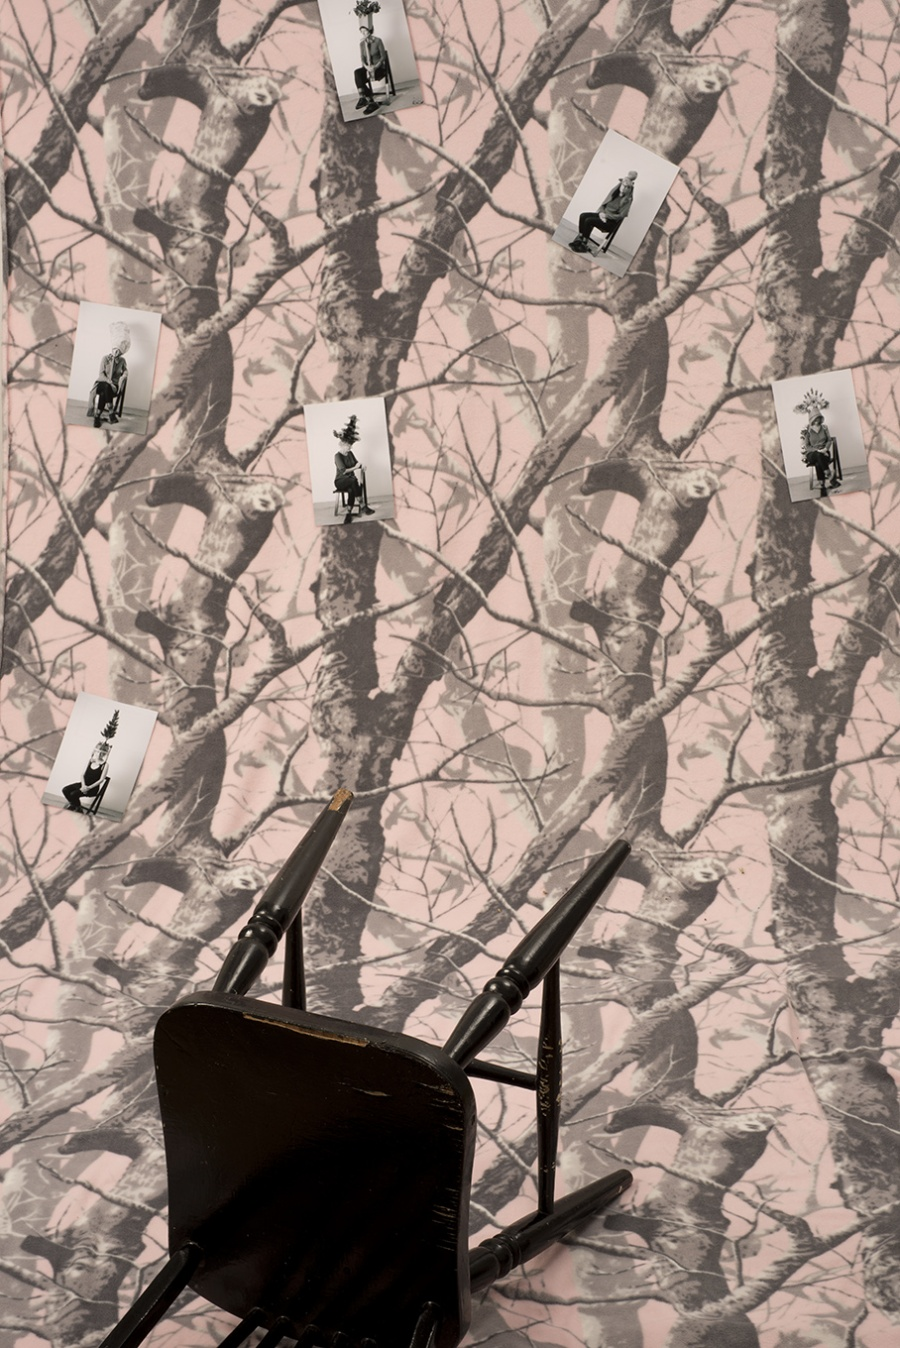 Black Chair in a Pink Forest